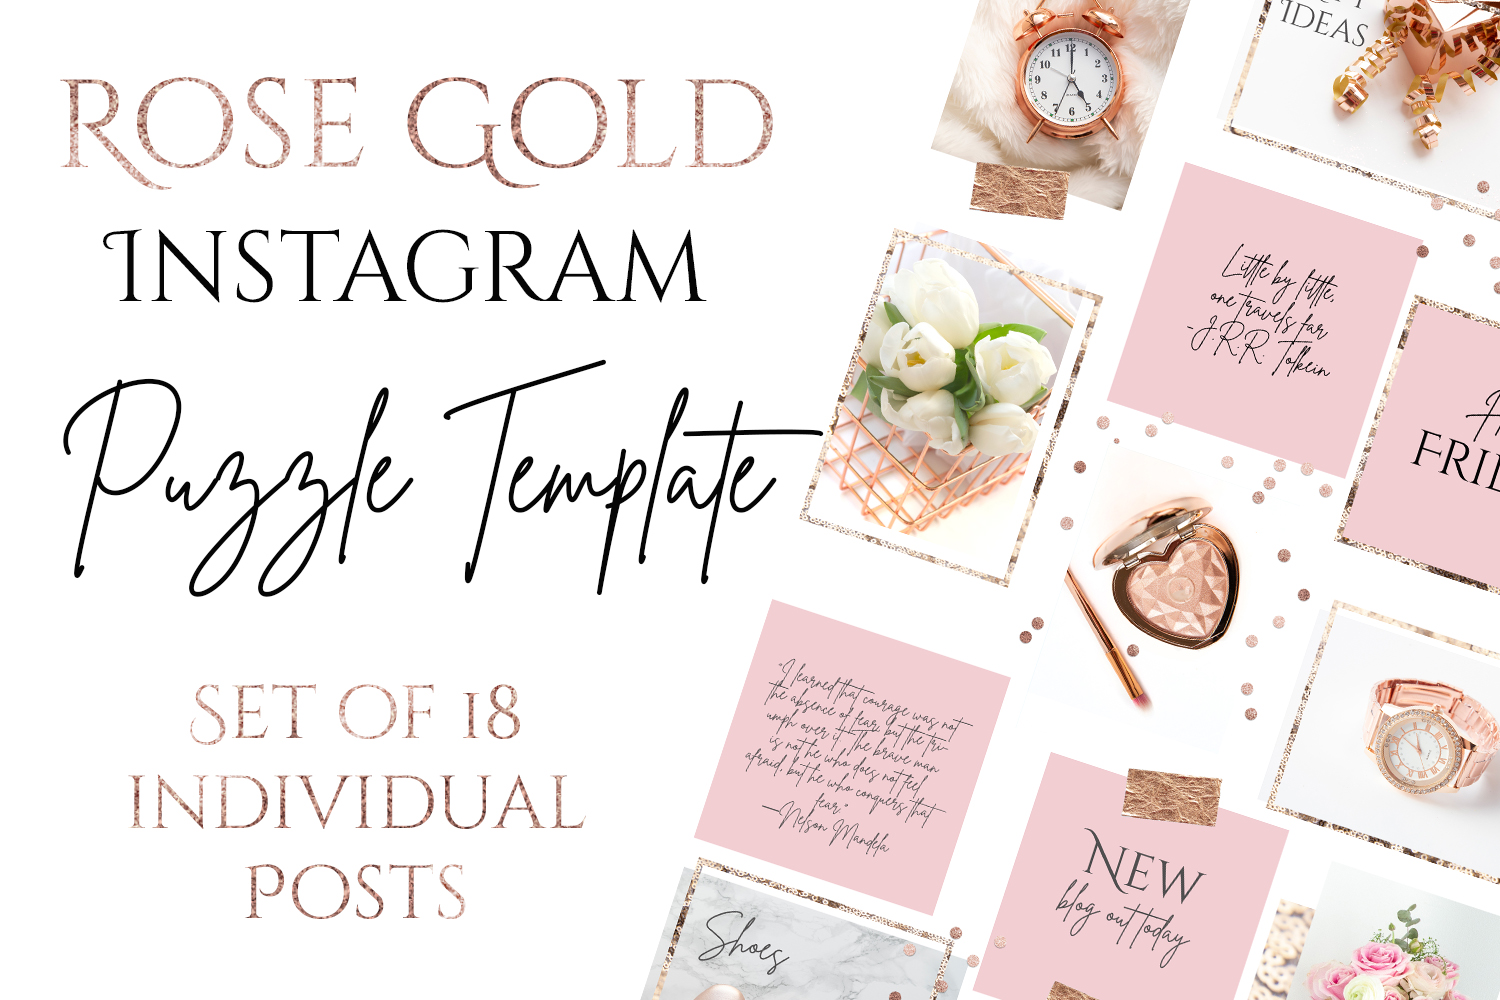 Rose Gold Instagram Puzzle Template - 15 Posts example image 1